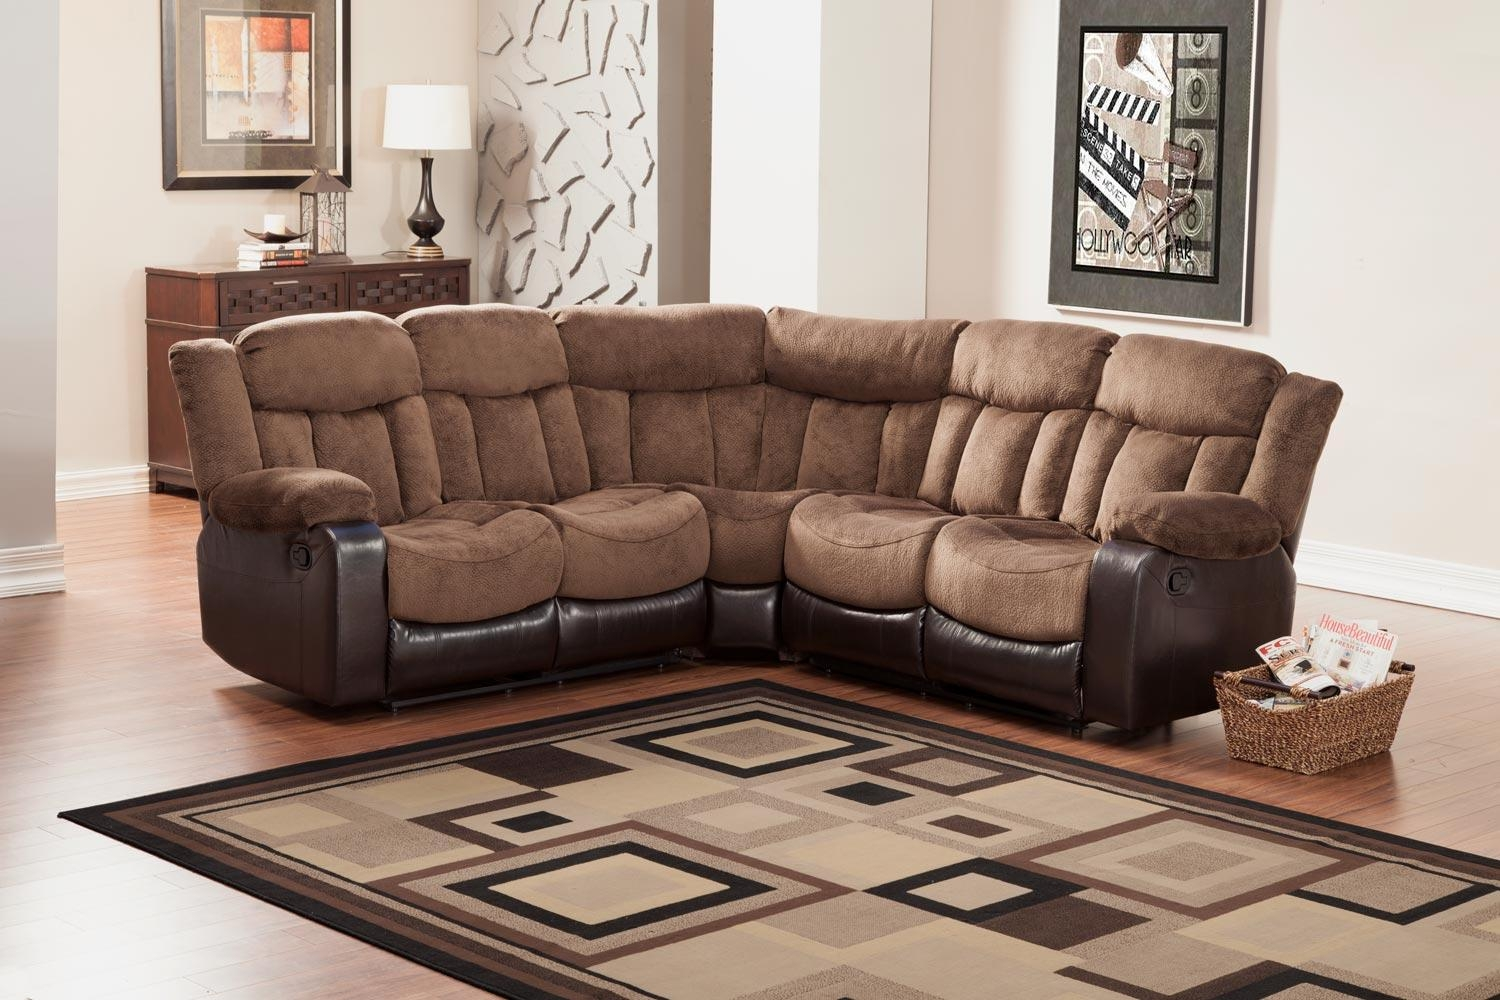 Astonishing Plush Sectional Sofas 80 For Your Sealy Posturepedic In Sealy Sofas (Image 1 of 20)